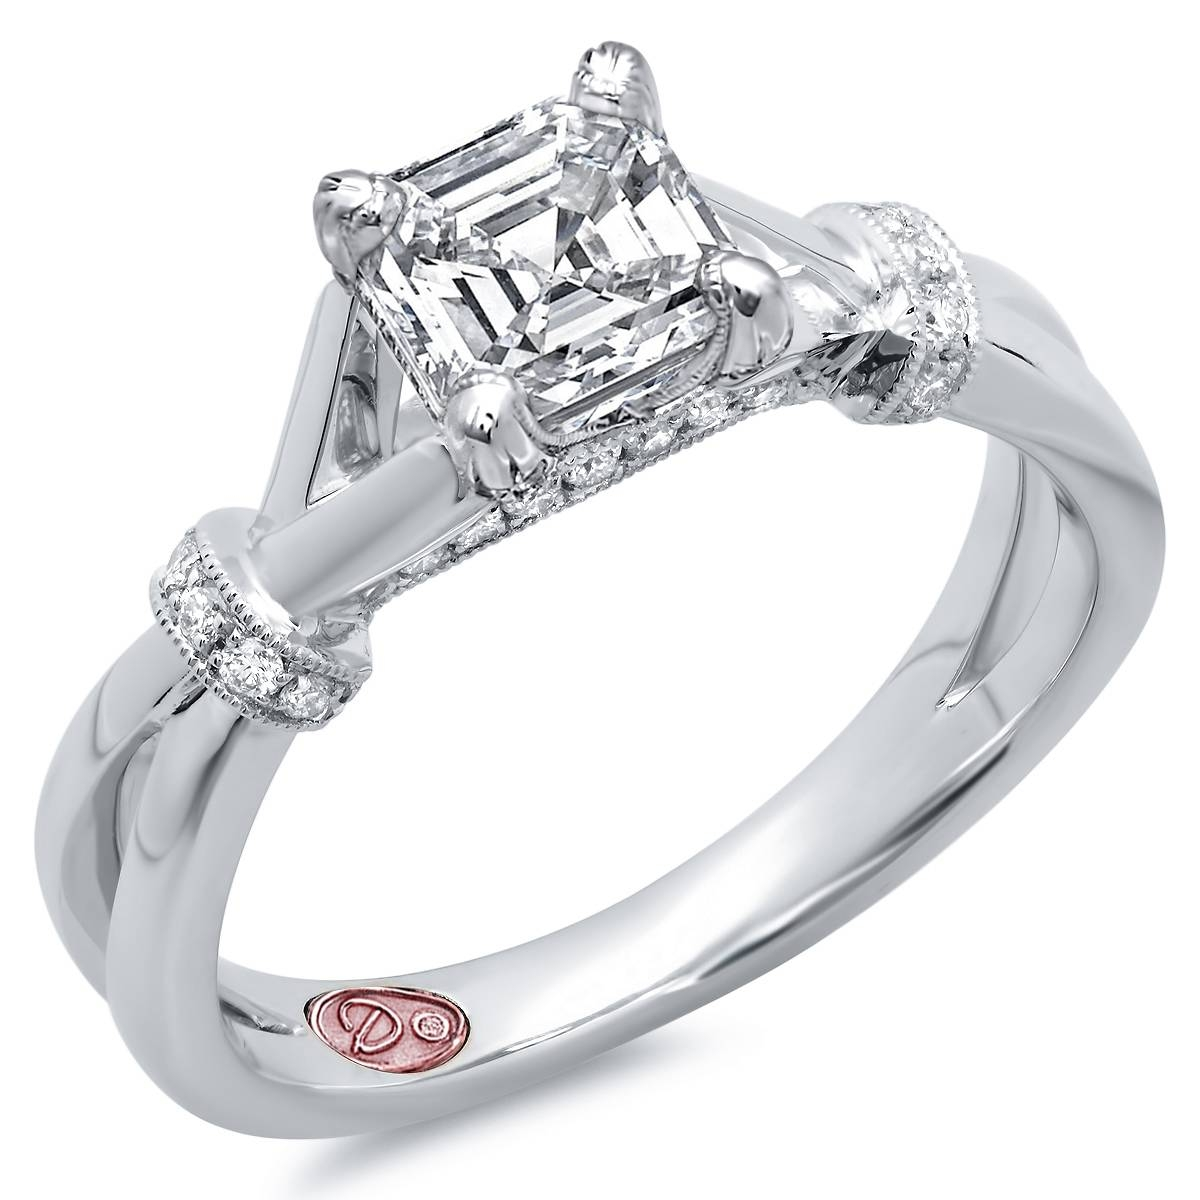 Womens Designer Engagement Rings | Demarco Bridal Jewelry Official Throughout Womans Engagement Rings (View 15 of 15)